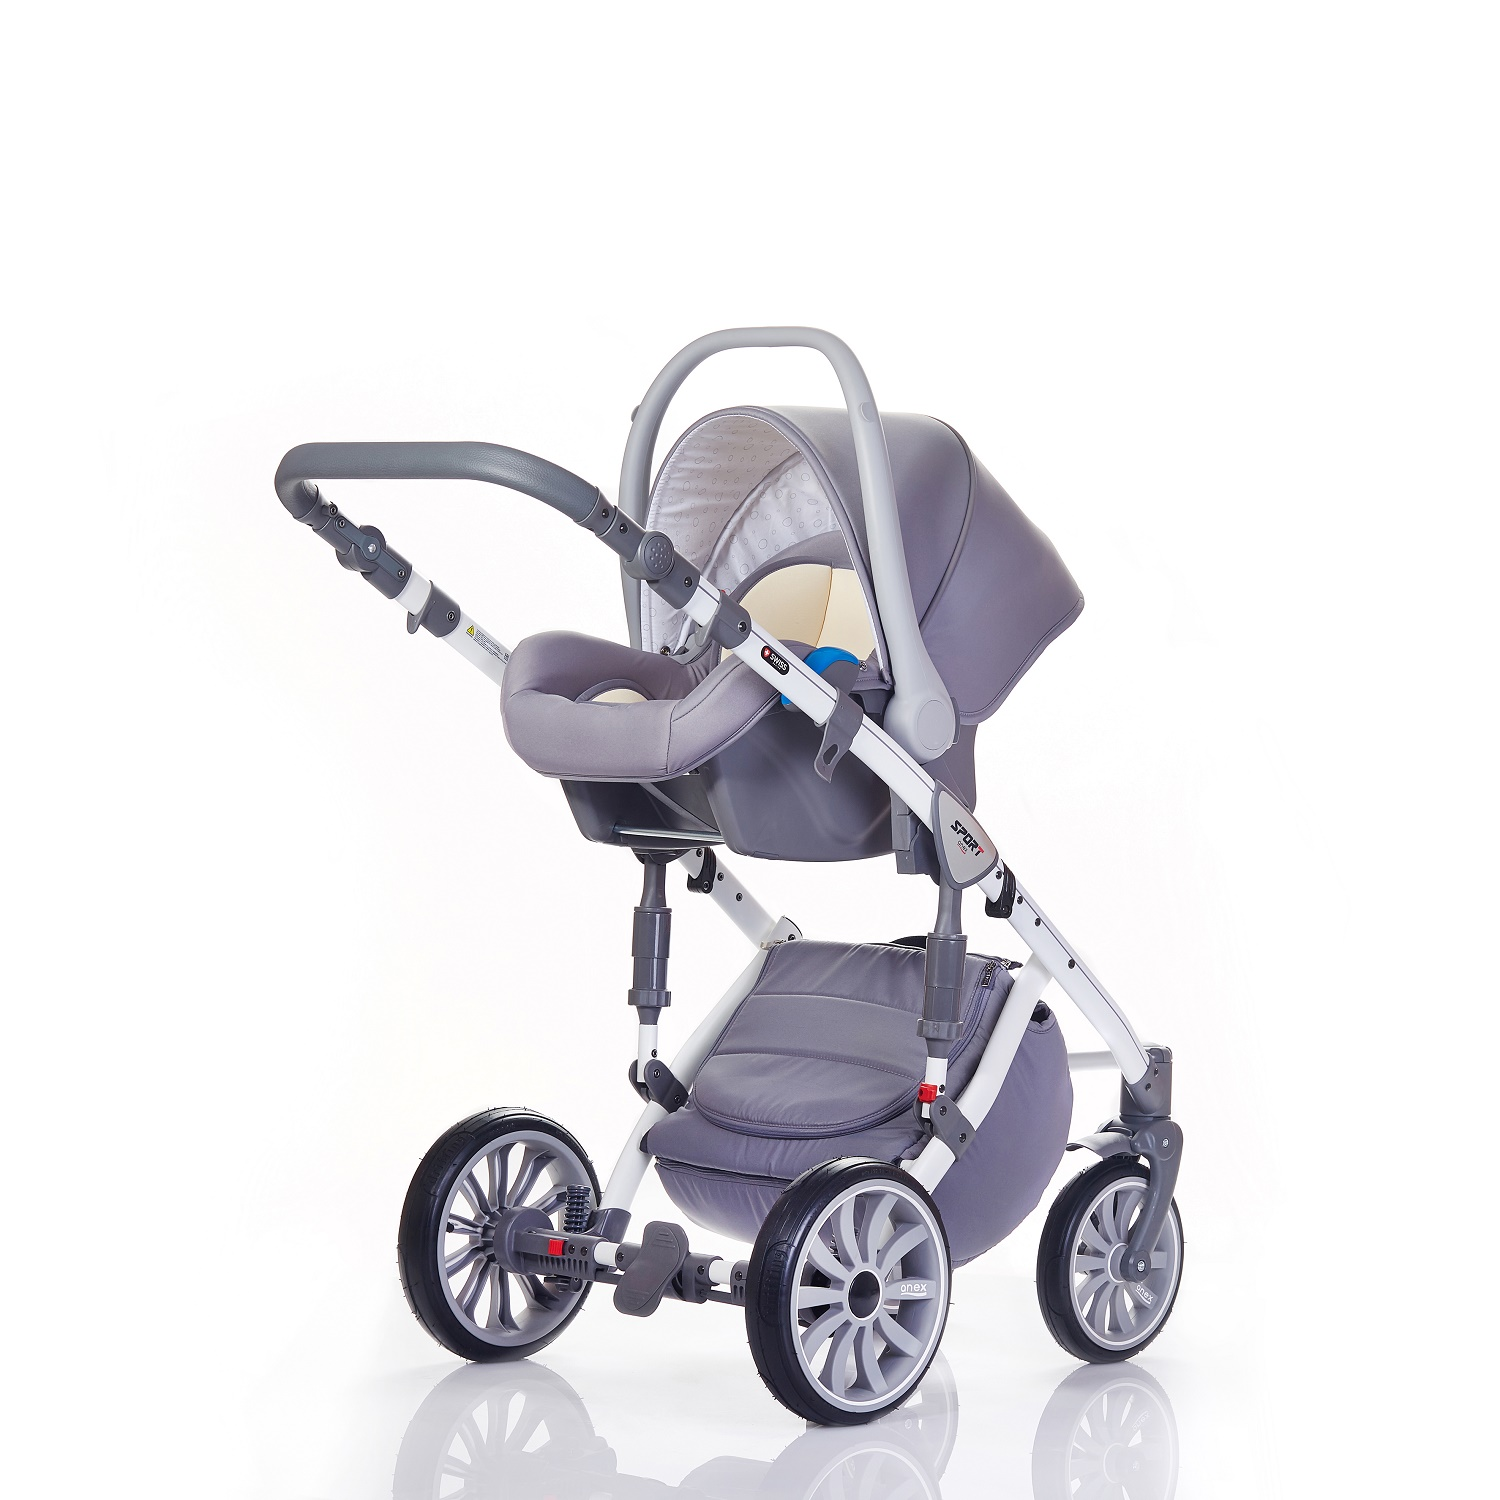 Коляска Anex Sport 3 в 1 Q1 PA07 gray+light-blue (ANEX)